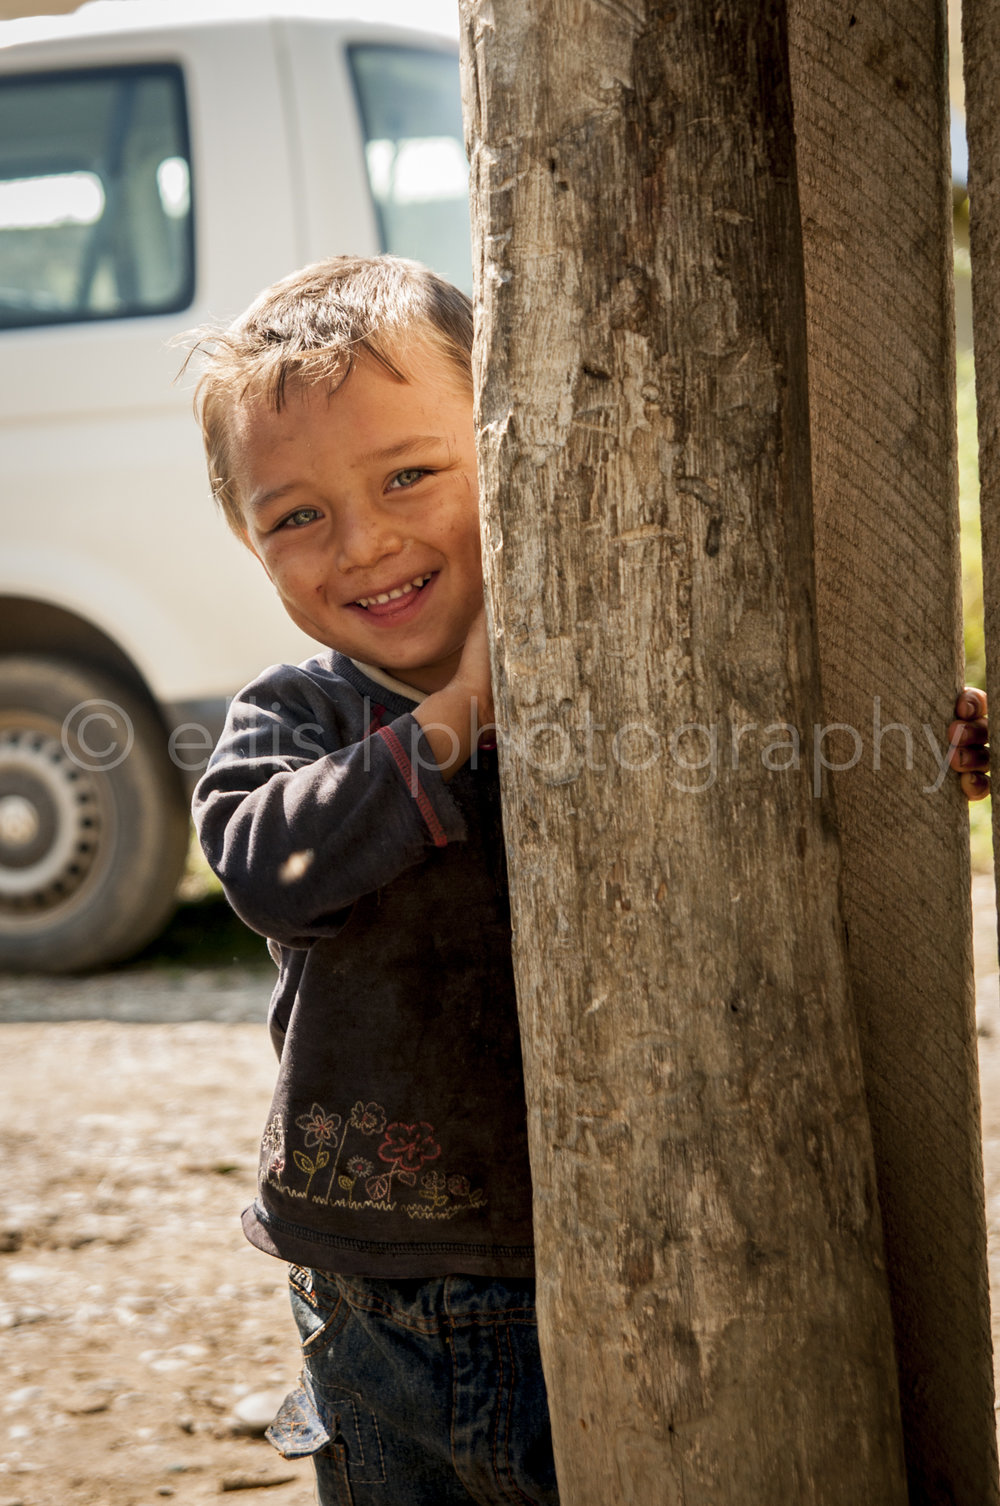 Young gipsy boy is coming out of his safe place, behind the fence. Curious for me and the camera. Looks super sweet and cute into the camera. Daily life photographer Ellis Photography - Portraits of a Romanian family.